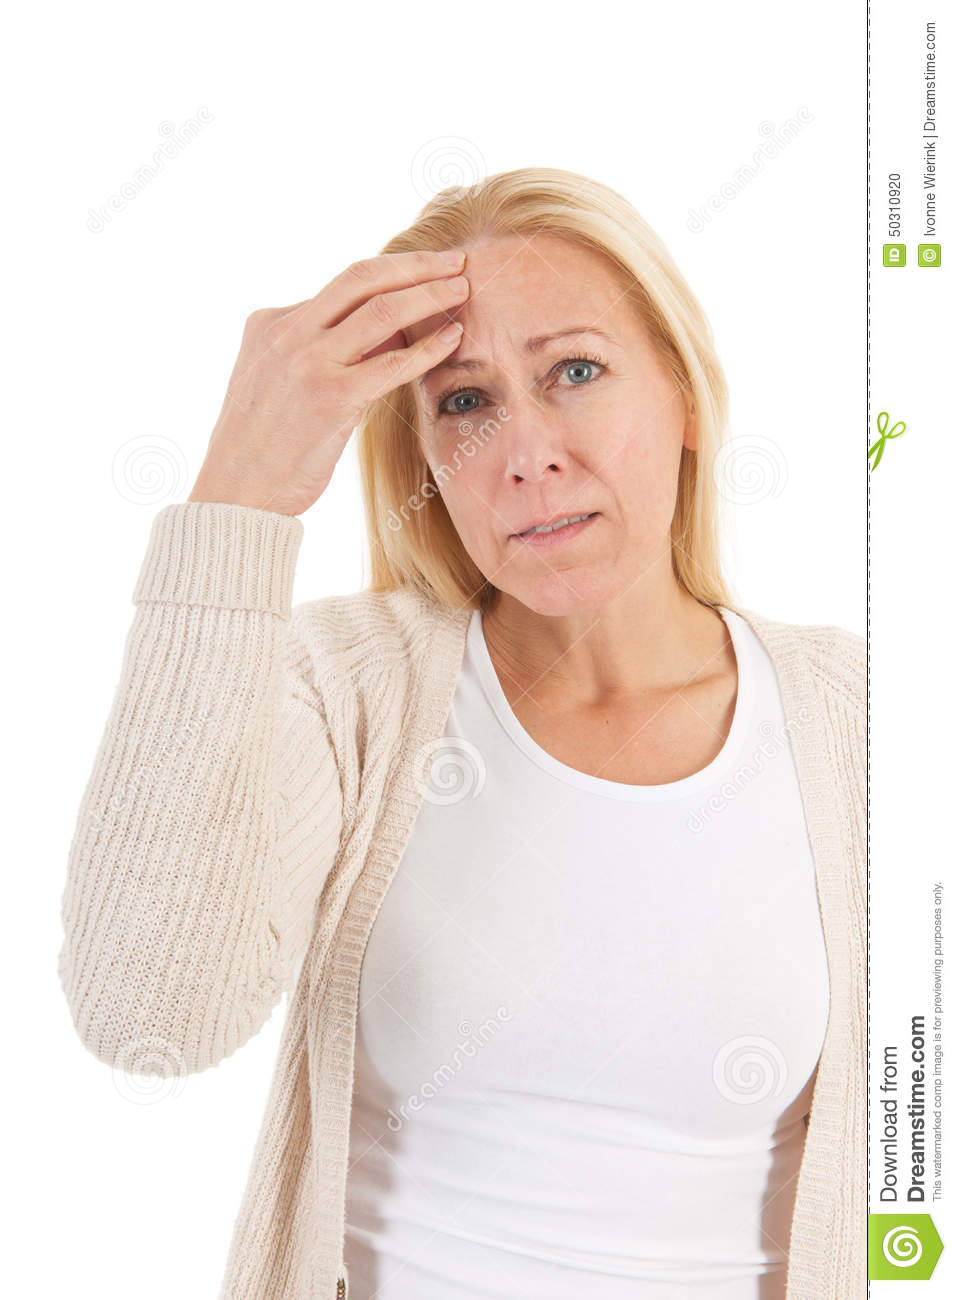 Woman Of Mature Age With Headache Stock Photo Image Of Headache